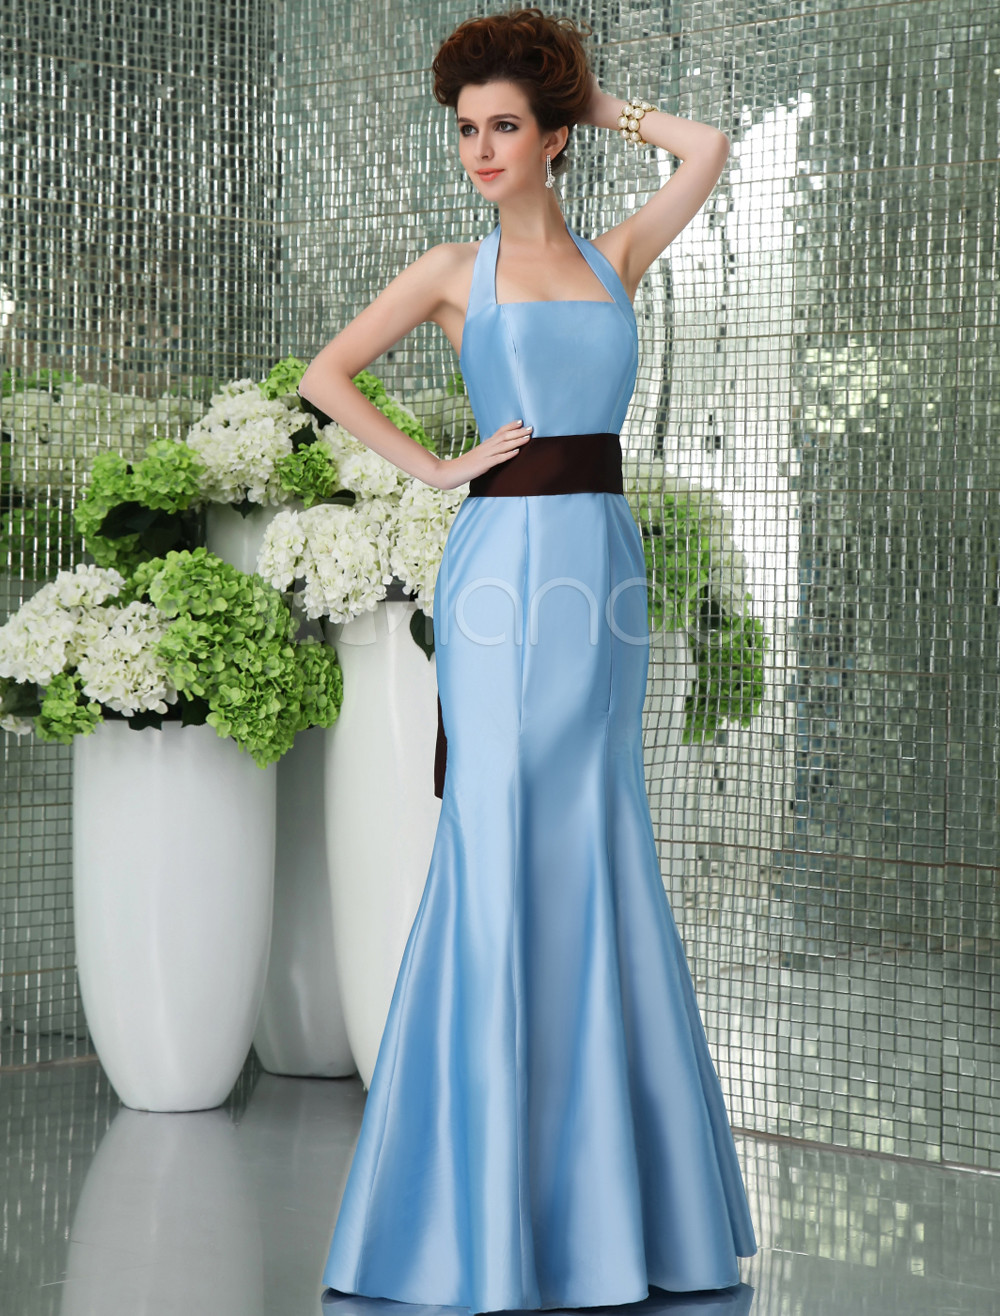 Beautiful Mermaid Trumpet Halter Sash Taffeta Bridesmaid Dress